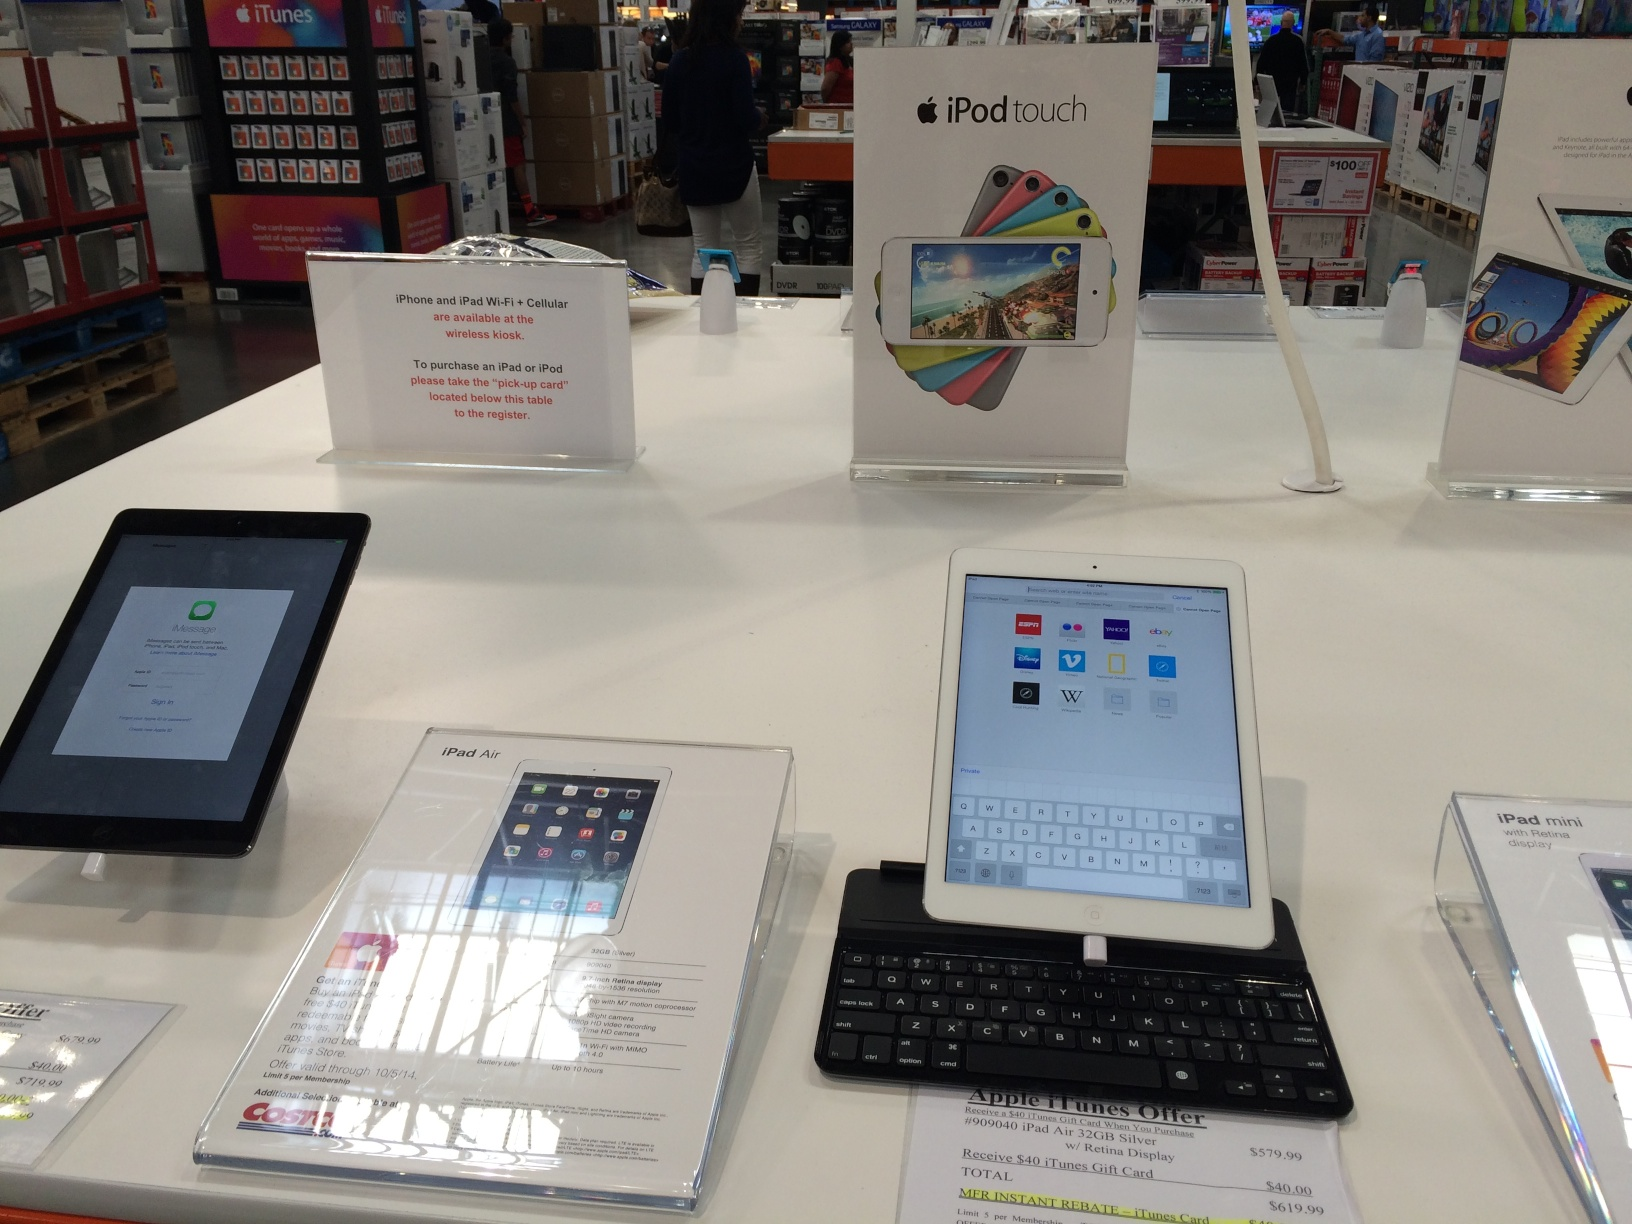 Apple products are on sale at COSTCO - Welcome to Ucikura's